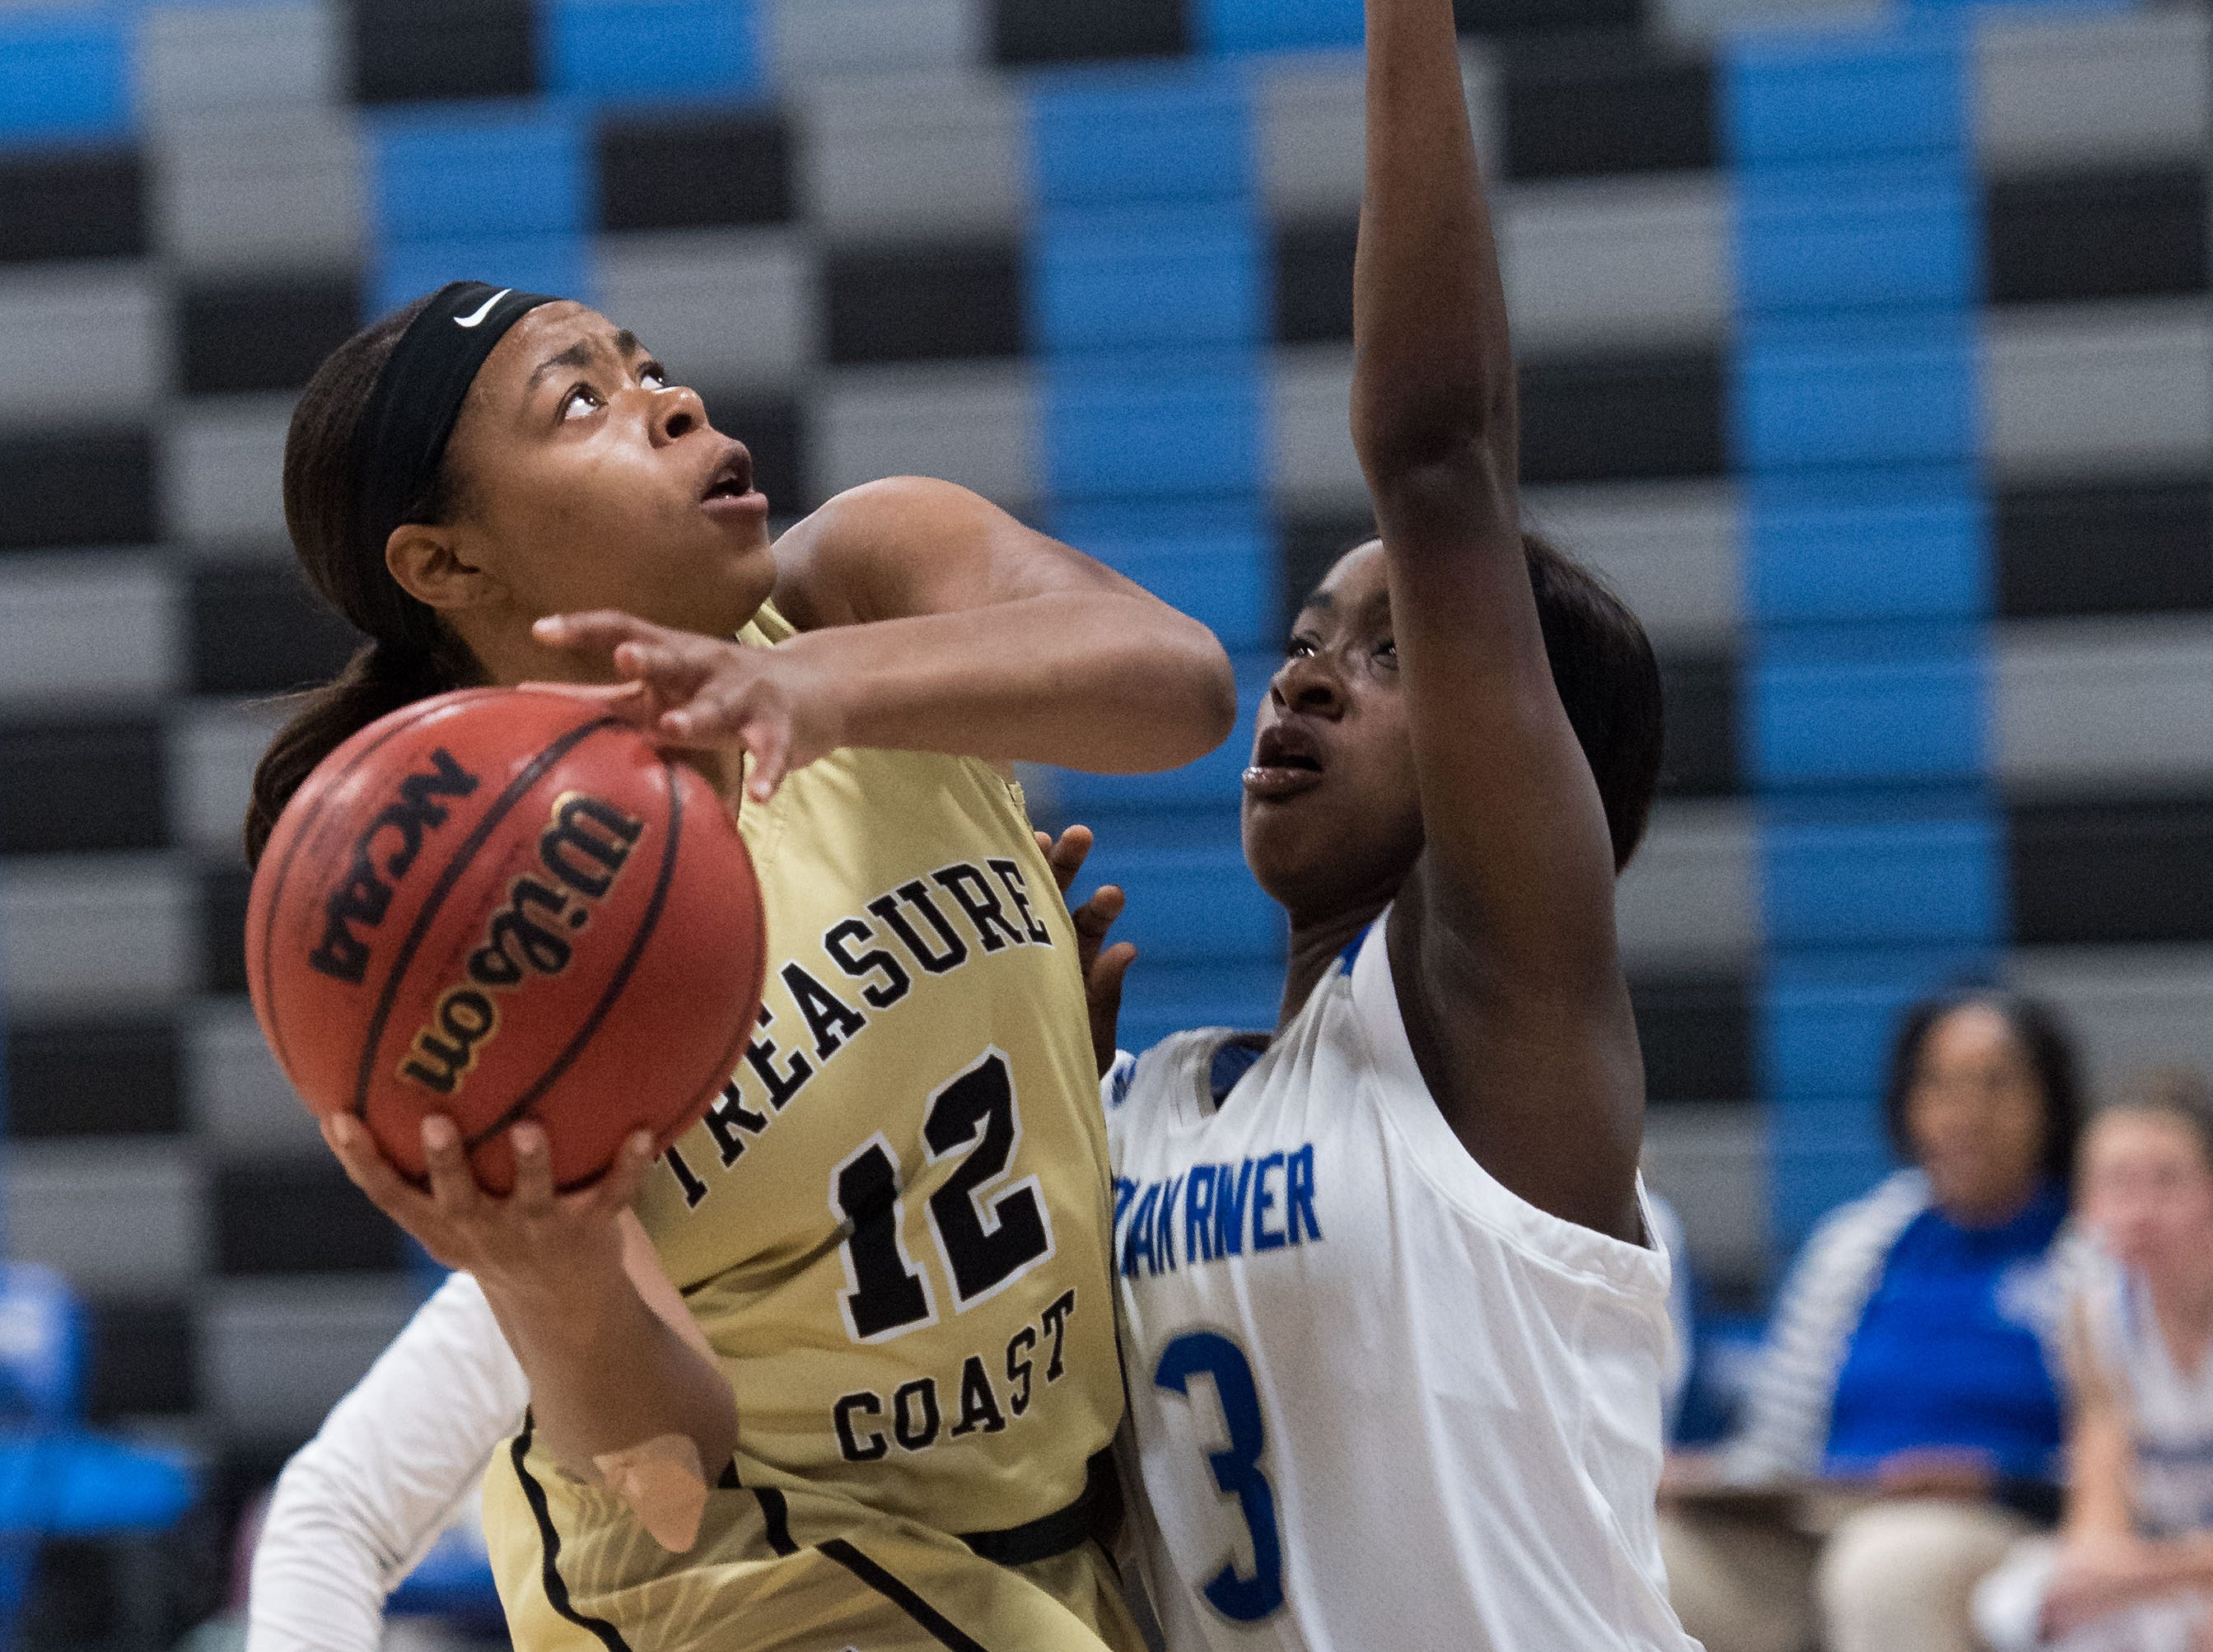 Treasure Coast's Brianna Houston goes up of a shot in the second period as Sebastian River's Tamiyah Wiggins defends during the high school girls basketball game Wednesday, Jan. 30, 2019, at Sebastian River High School.